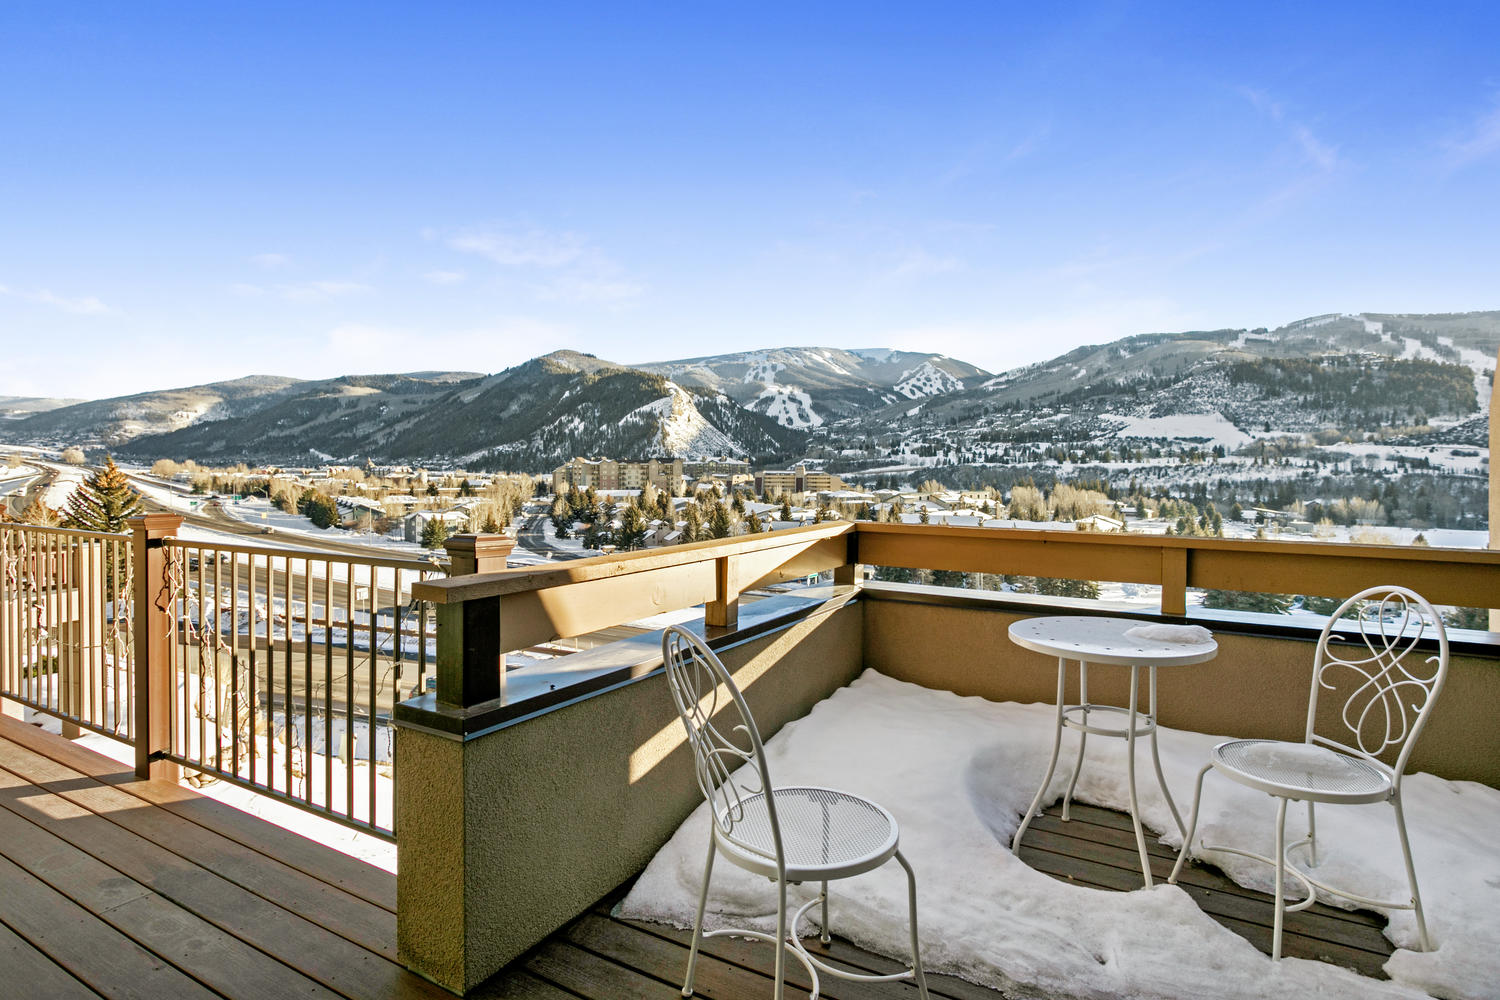 Townhouse for Sale at Chambertin Townhome #5 420 Nottingham Road #5 Avon, Colorado, 81620 United States